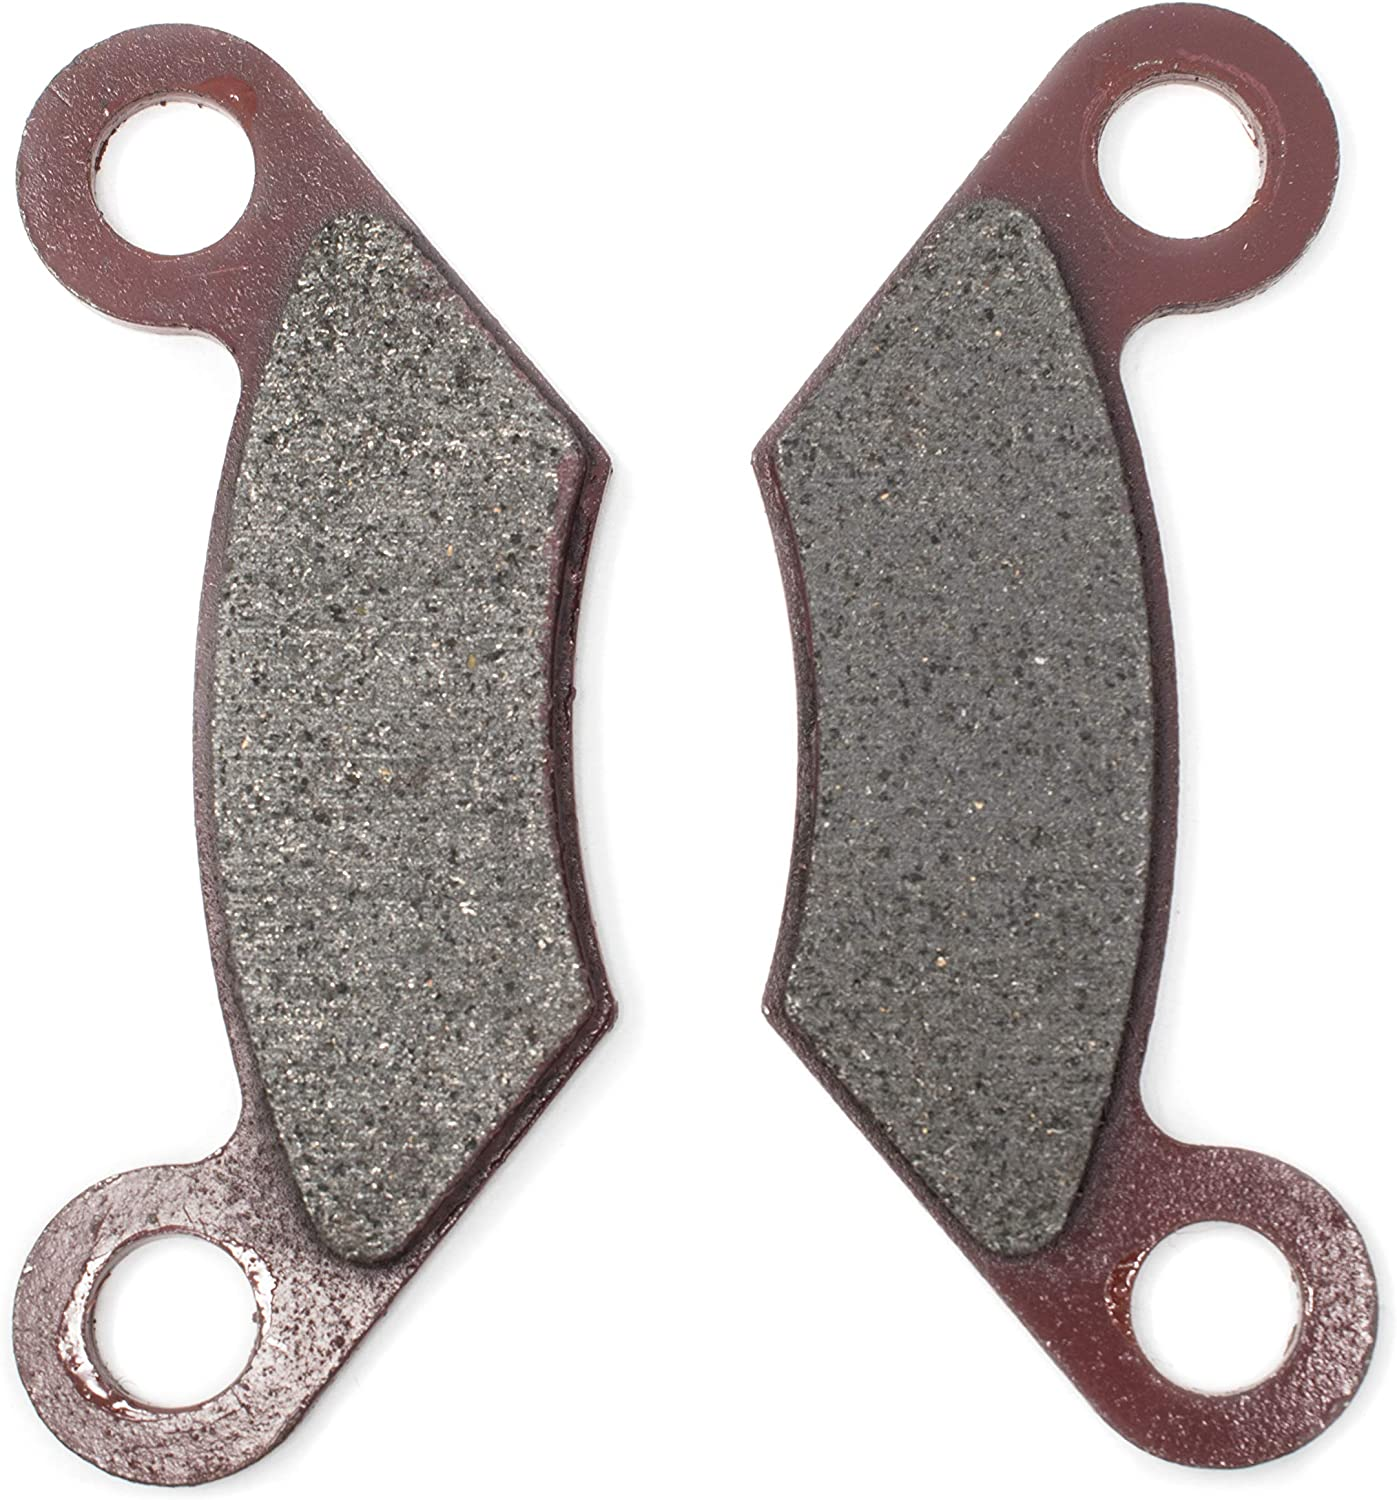 DP 0415-202 Front ATV Brake Pads Fits Polaris